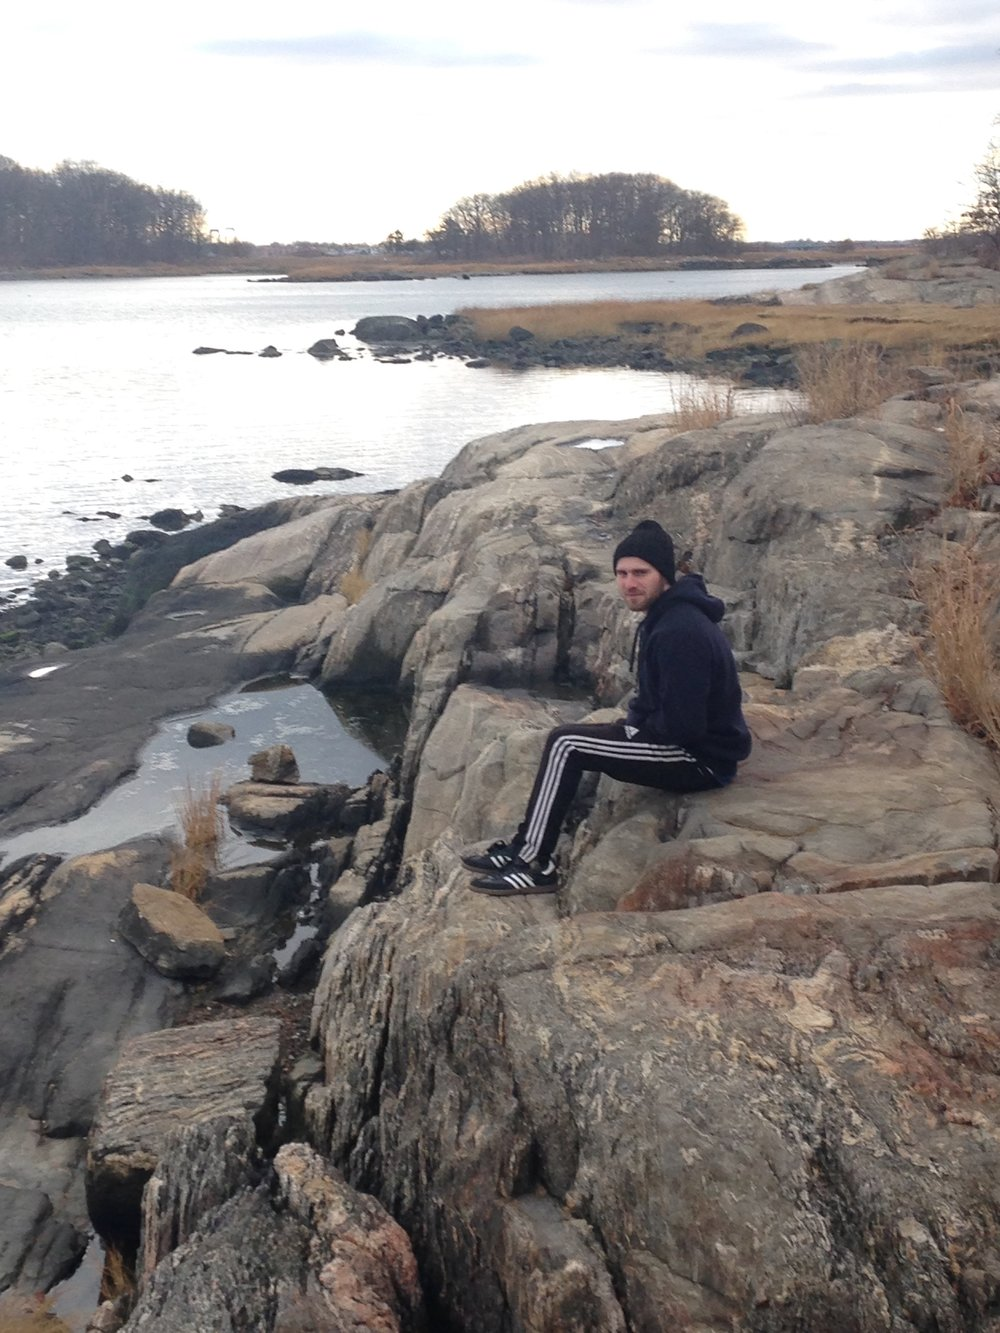 Last year's hike, son on the rocks